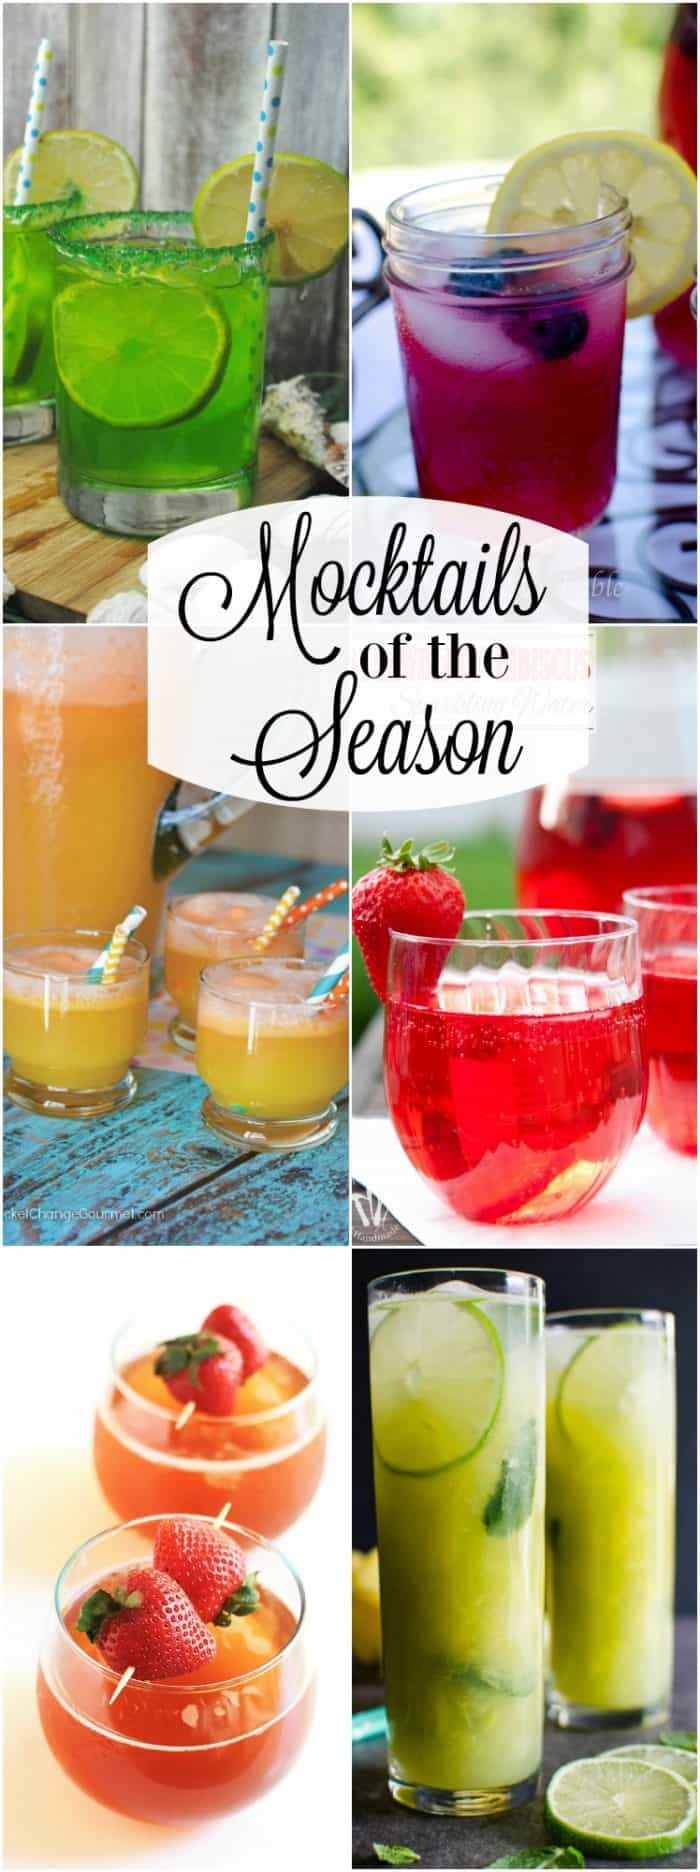 In need of the perfect refreshing beverage without the alcohol. These are the Mocktails of the Season that are sure to set the mood of the season.